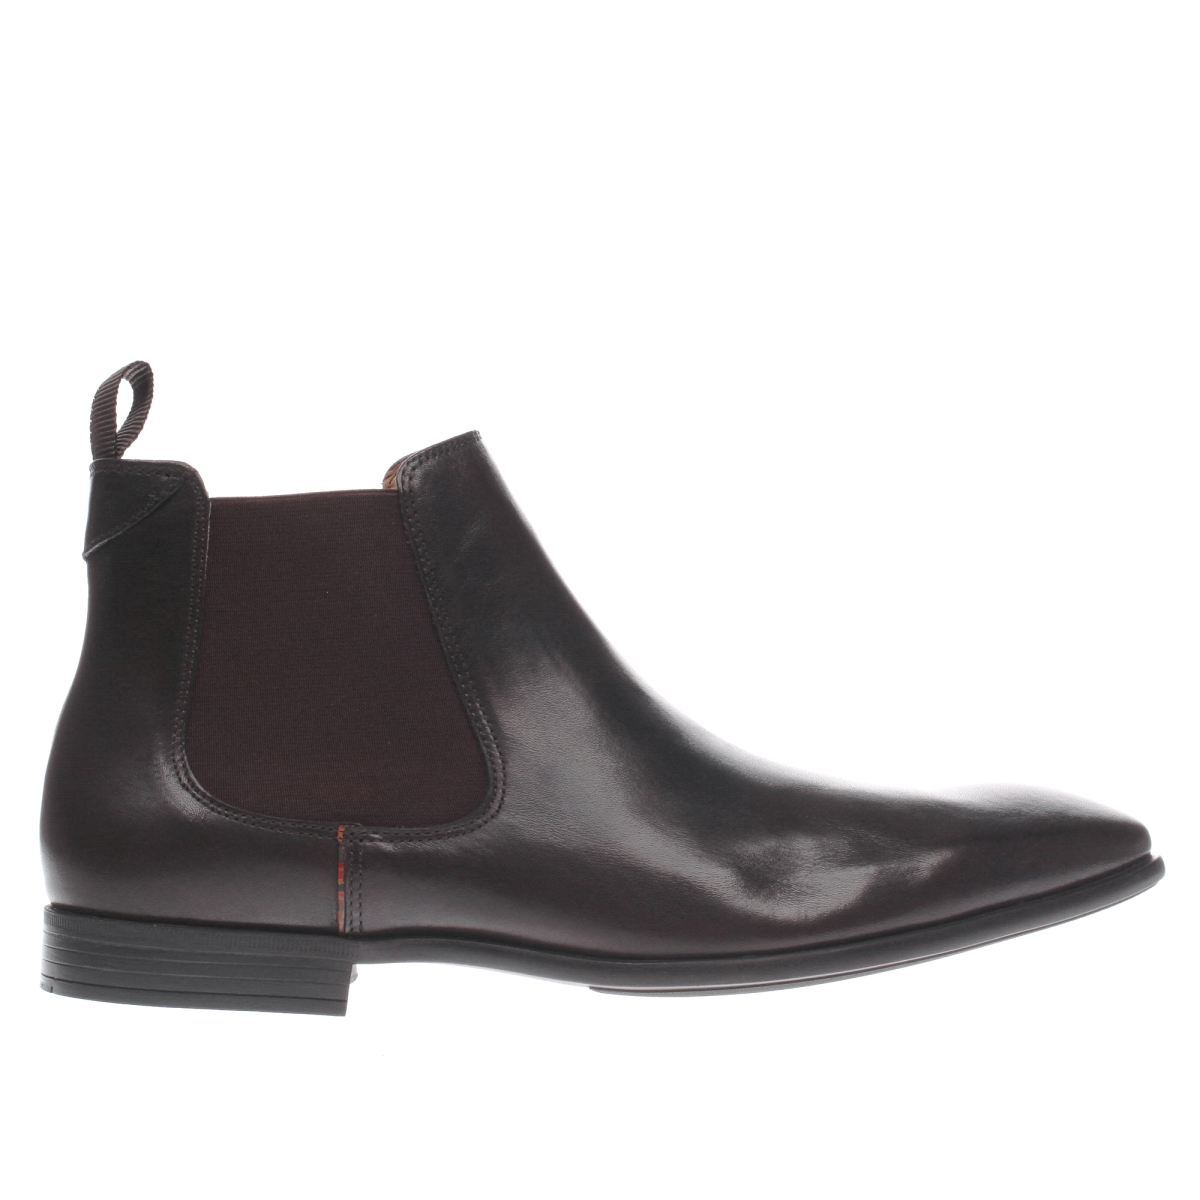 paul smith shoe ps Paul Smith Shoe Ps Dark Brown Falconer Boots